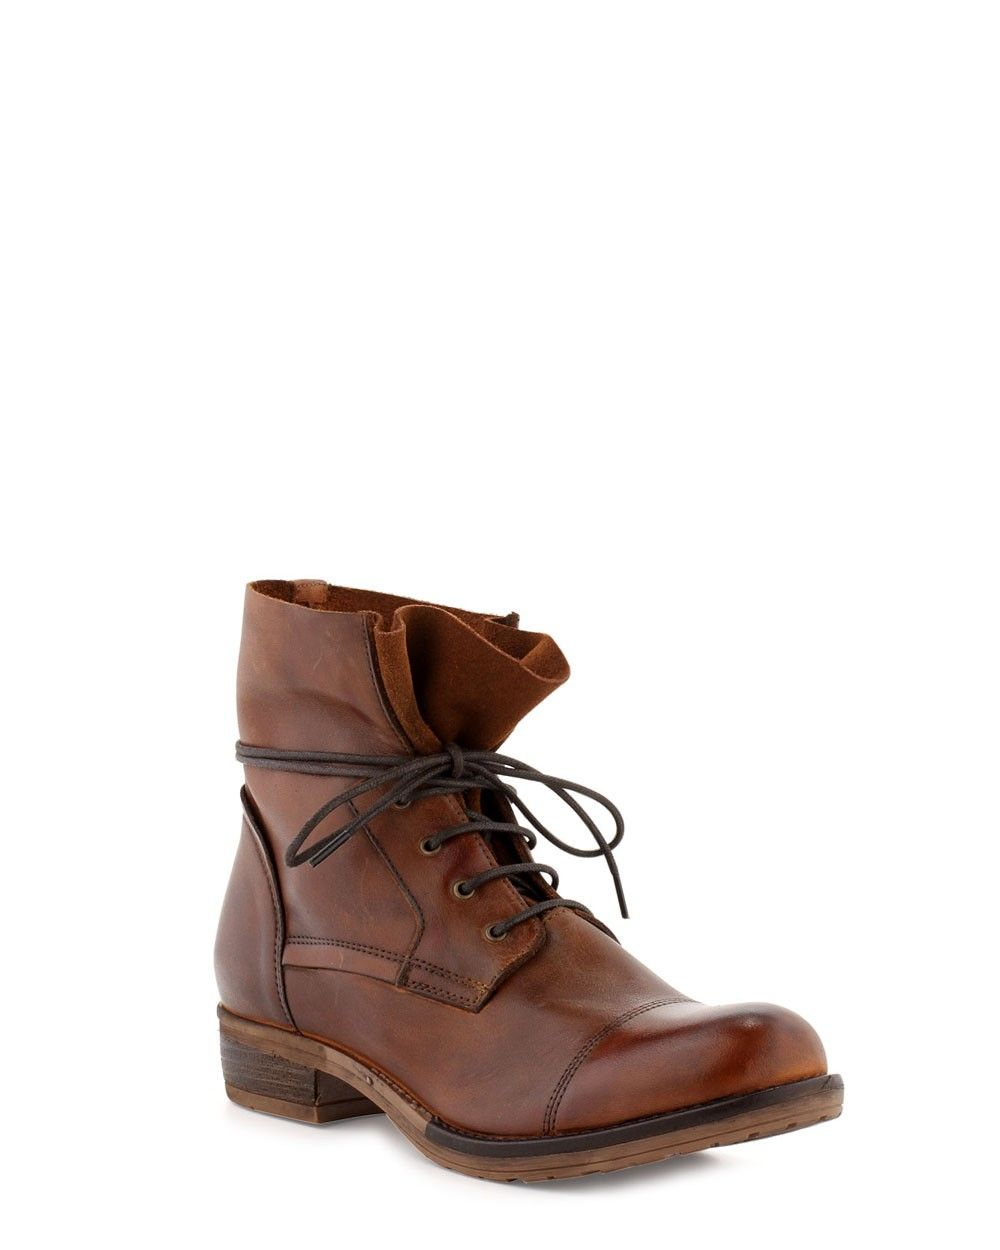 boots - bingalls - boots & low boots - chaussures femme automne